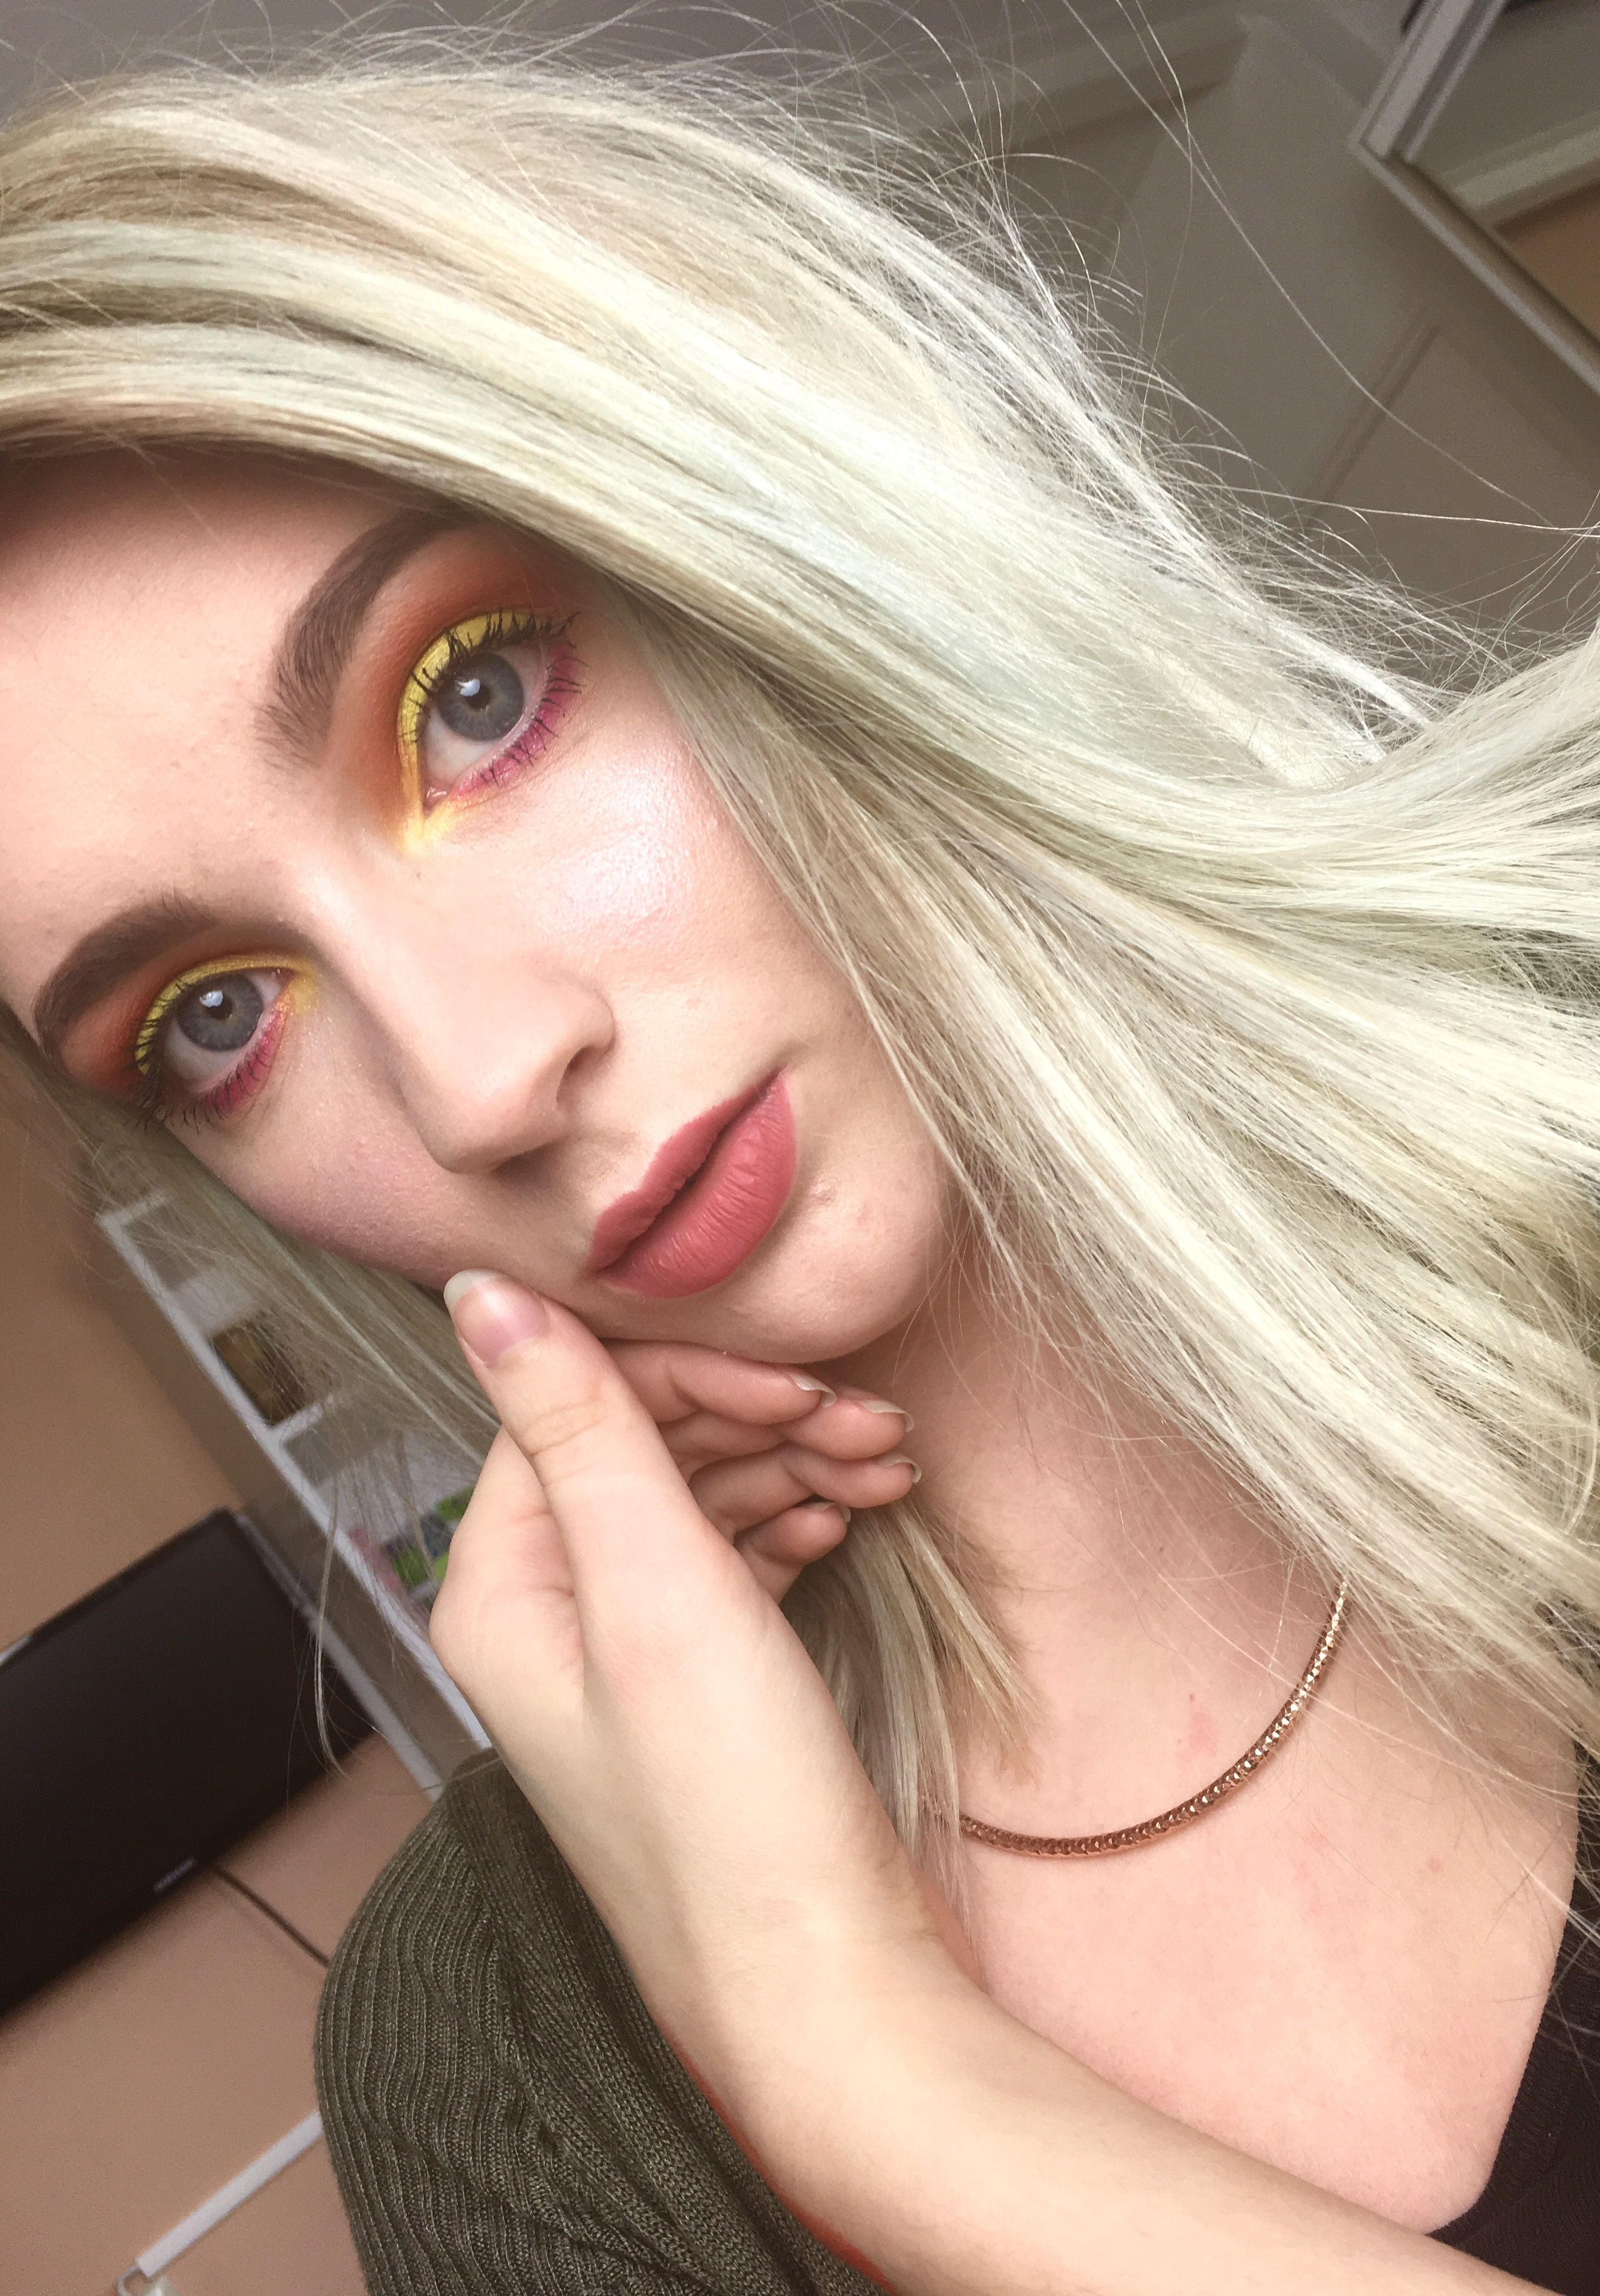 Day 2 - neon  Used BH cosmetics pop art palette to create this neon eye. It's very different than what I normally do but I loved it so much!